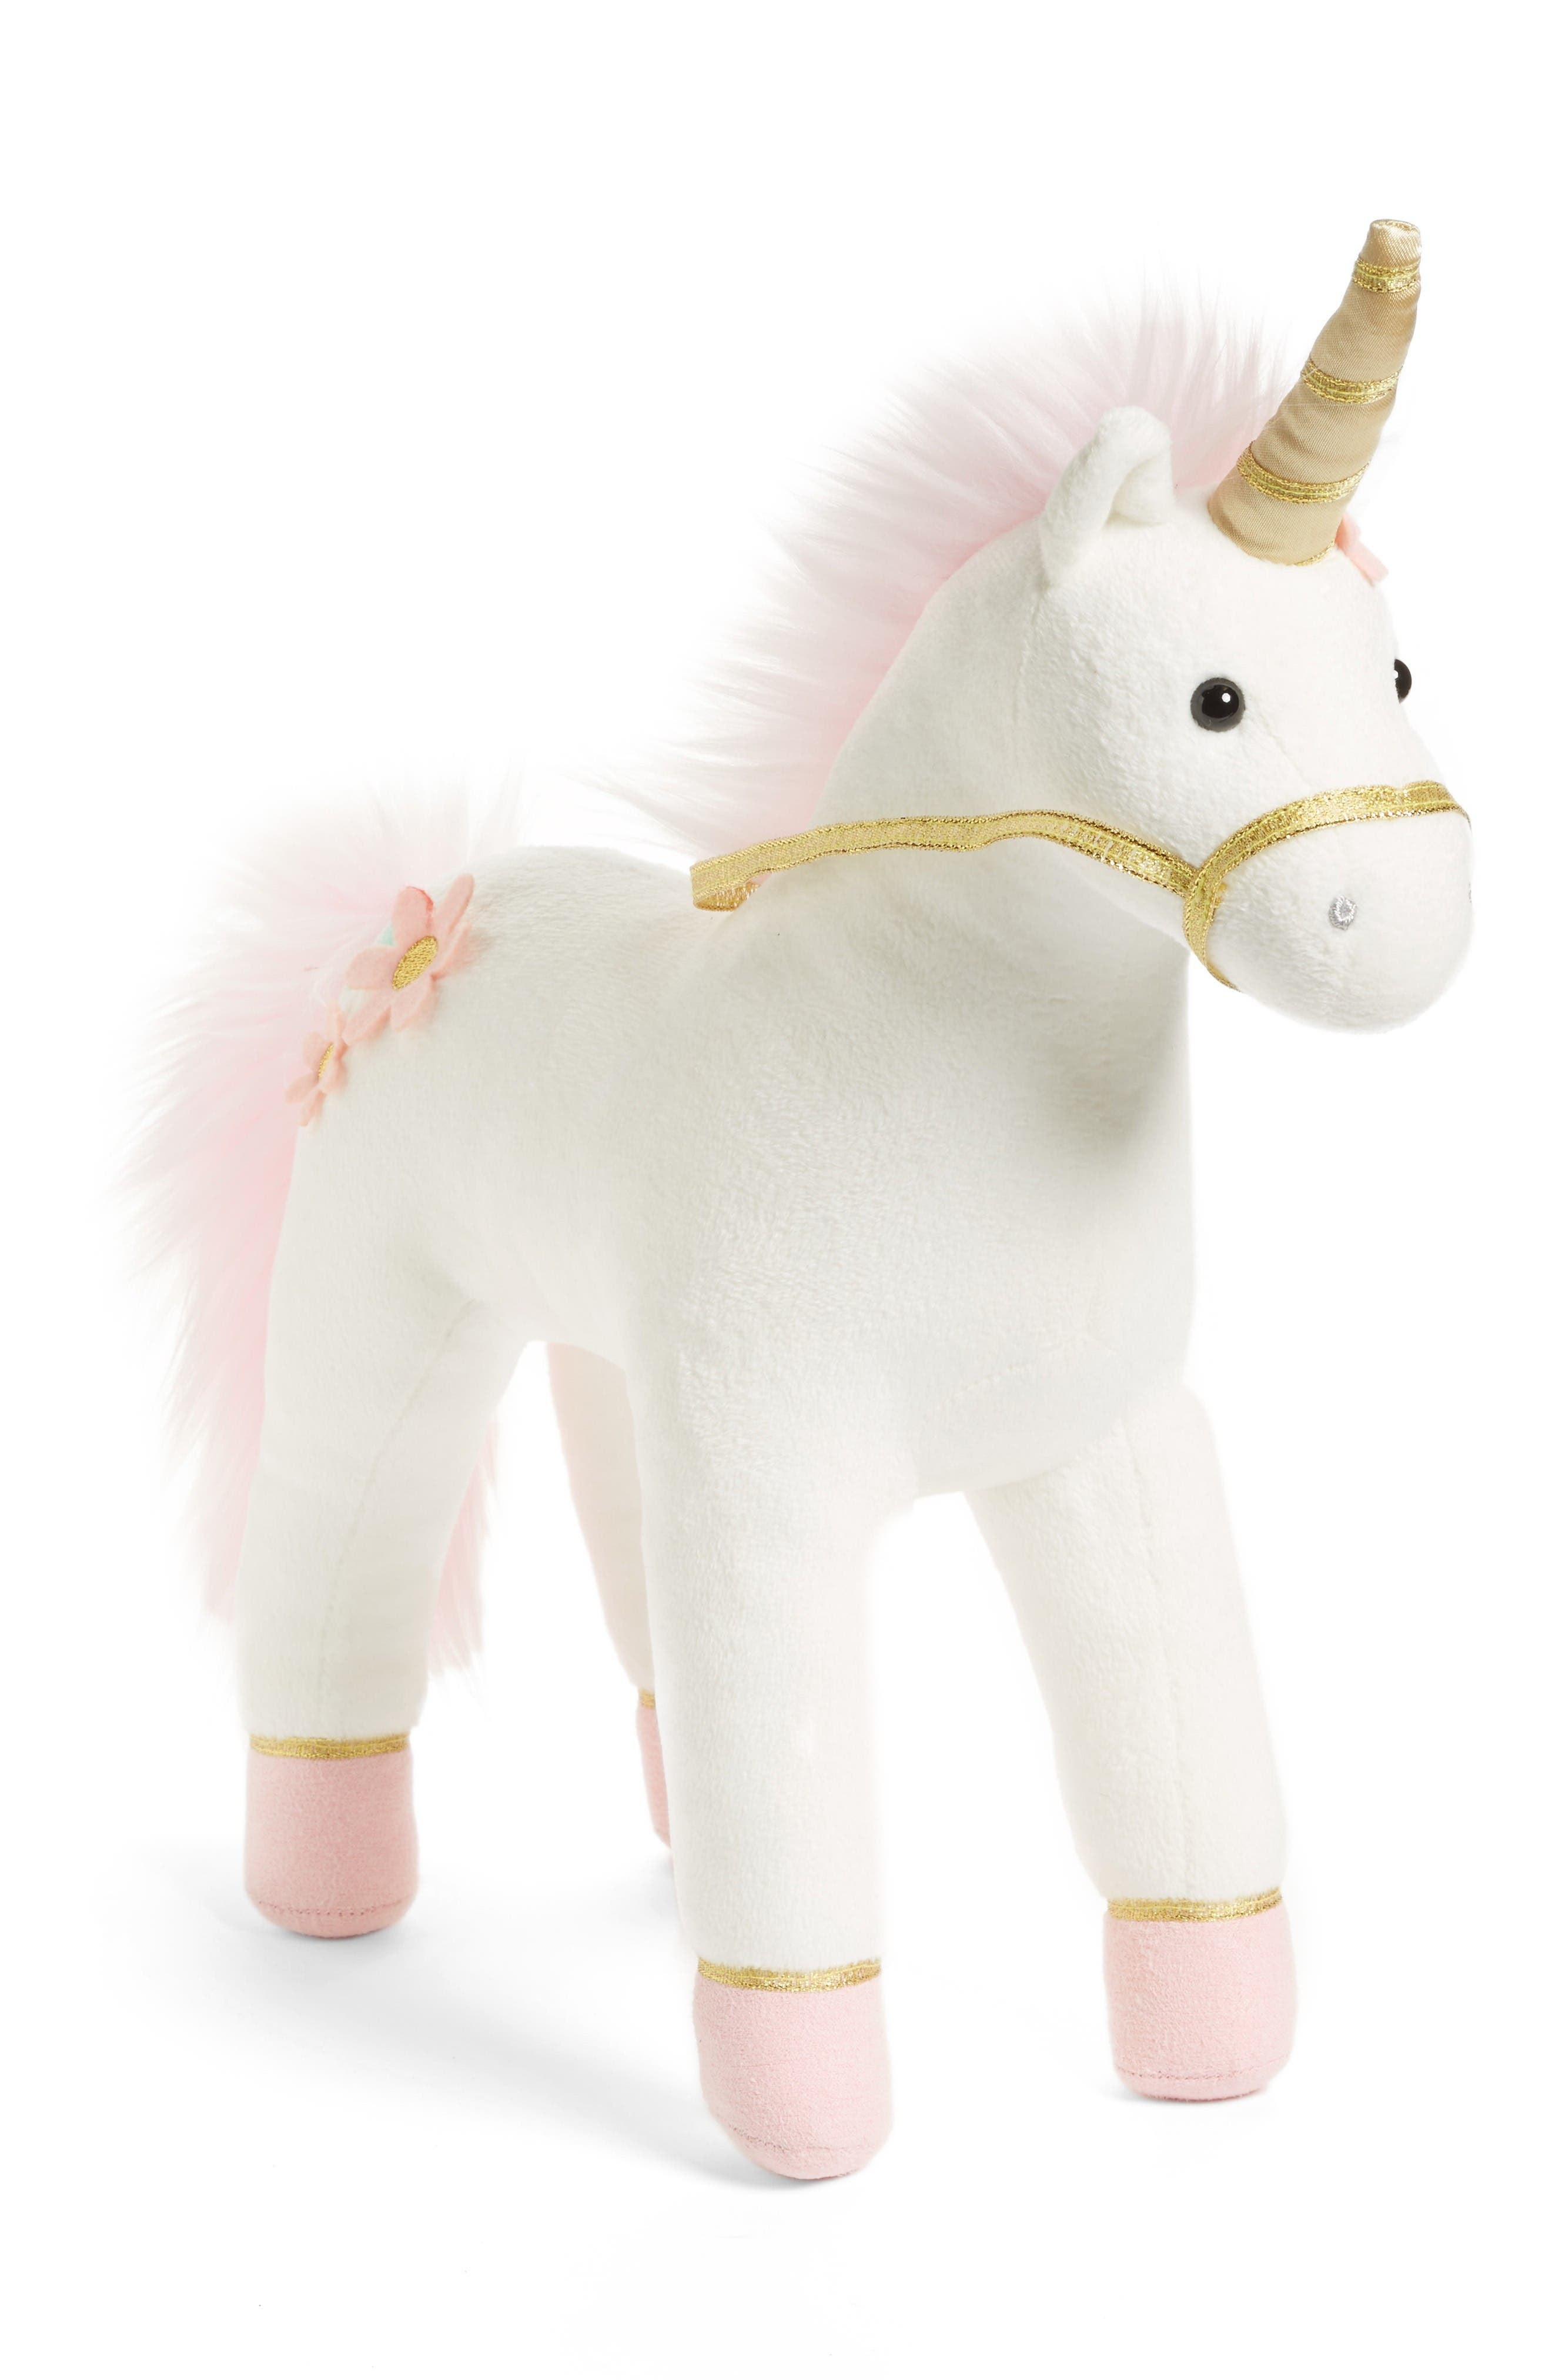 Alternate Image 1 Selected - Gund LilyRose Unicorn Stuffed Animal